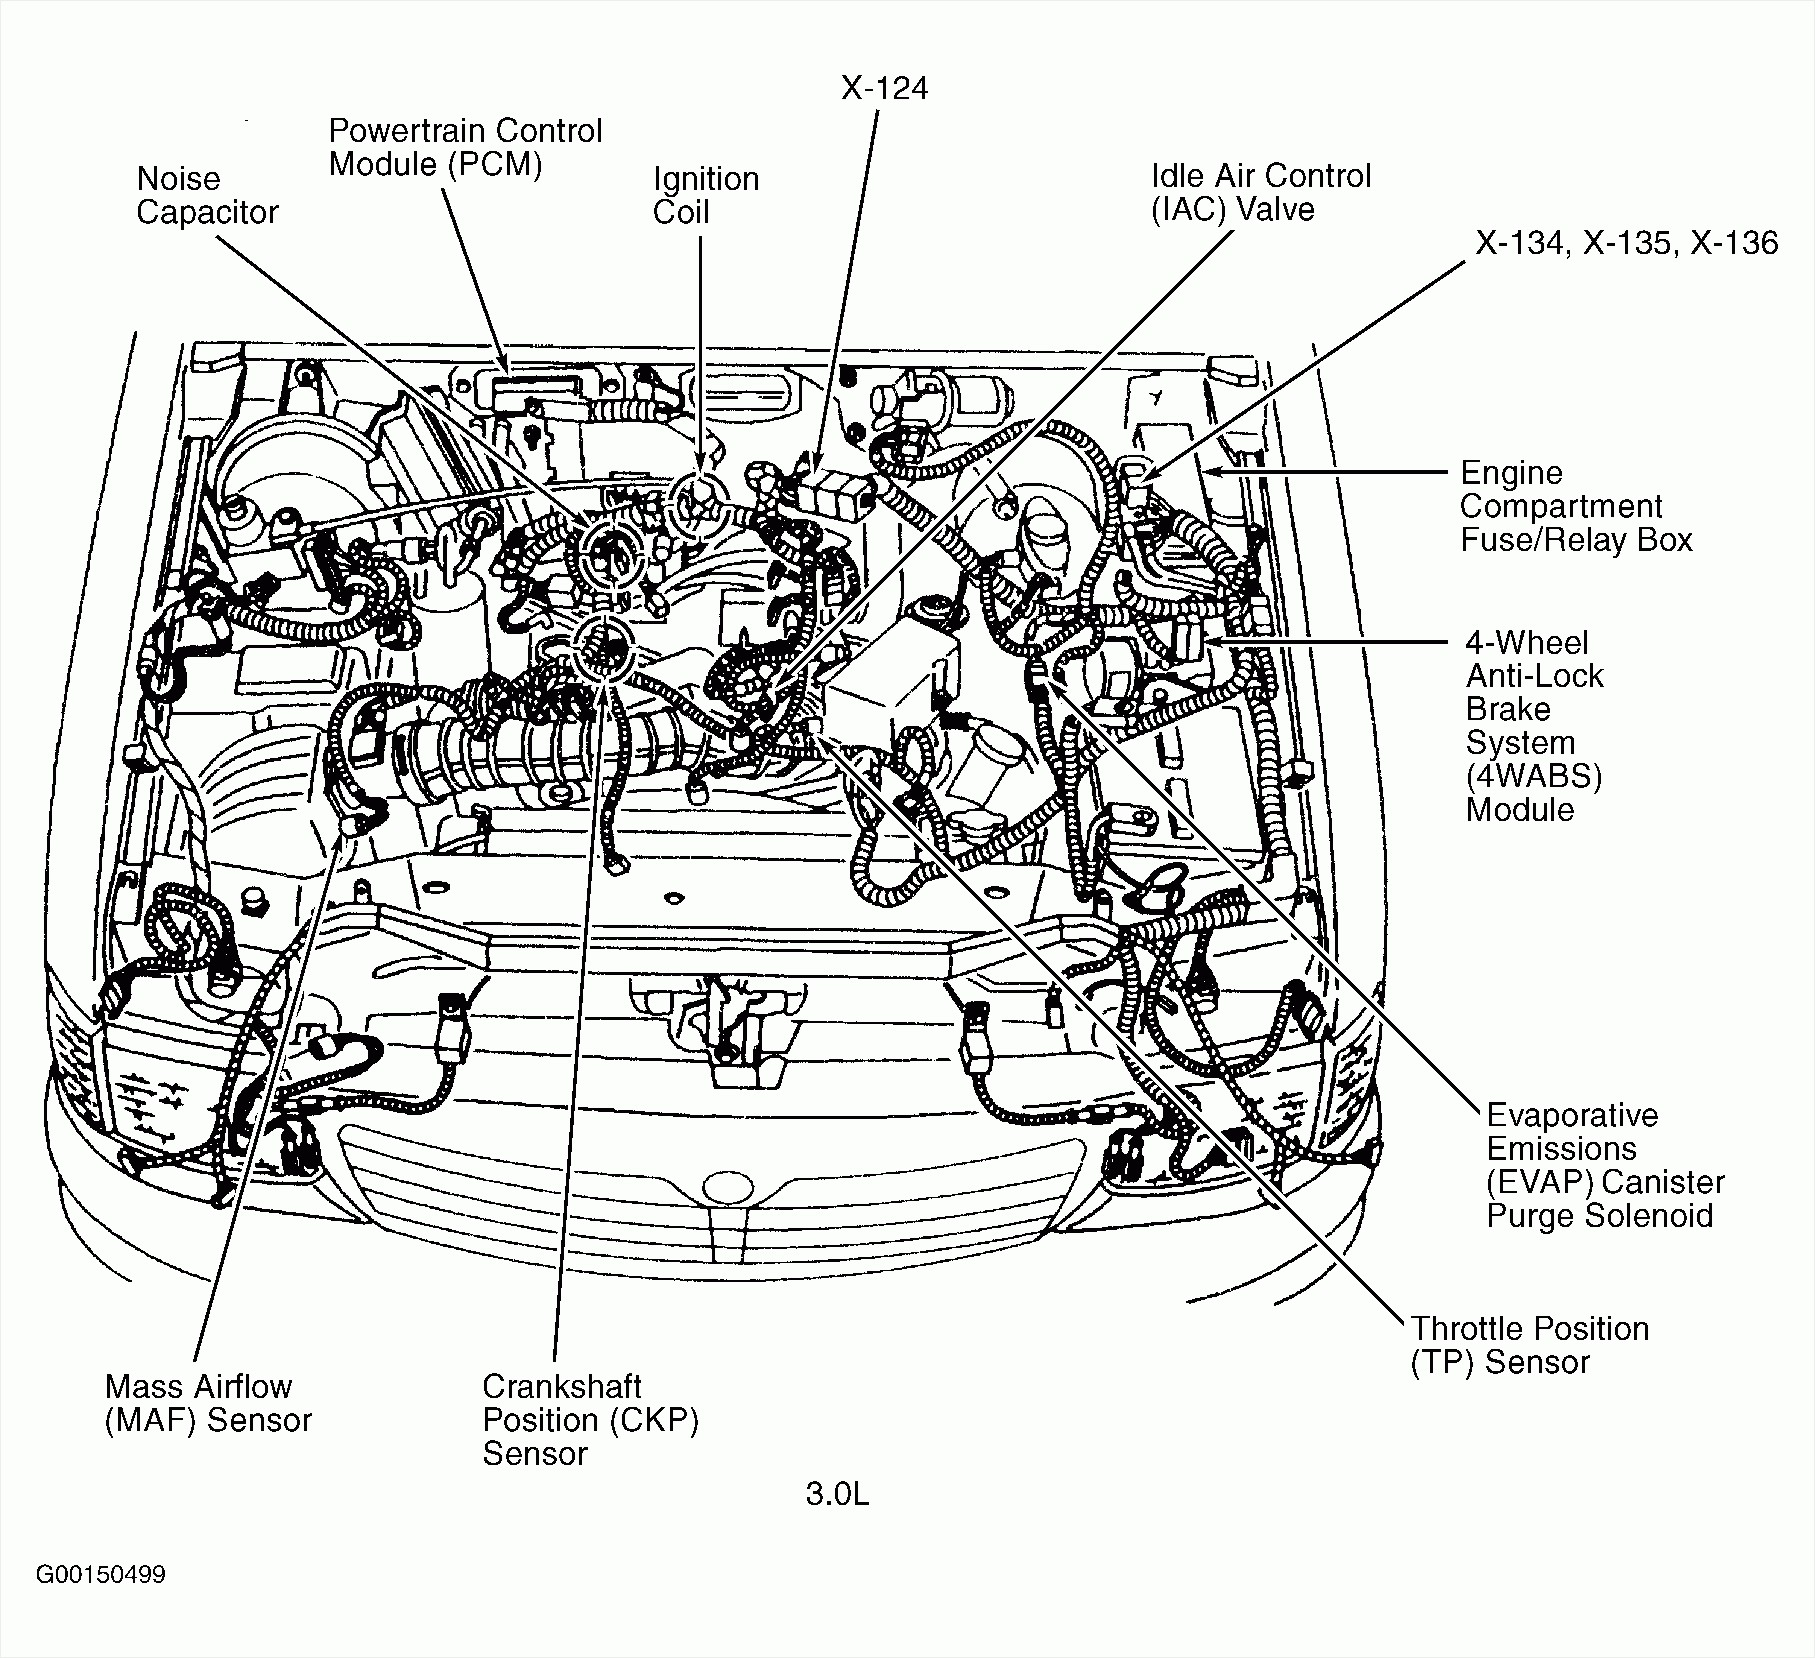 hight resolution of 3 1 v6 engine diagram wiring diagram blogs pontiac 3100 engine diagram 3100 v6 engine wiring diagram